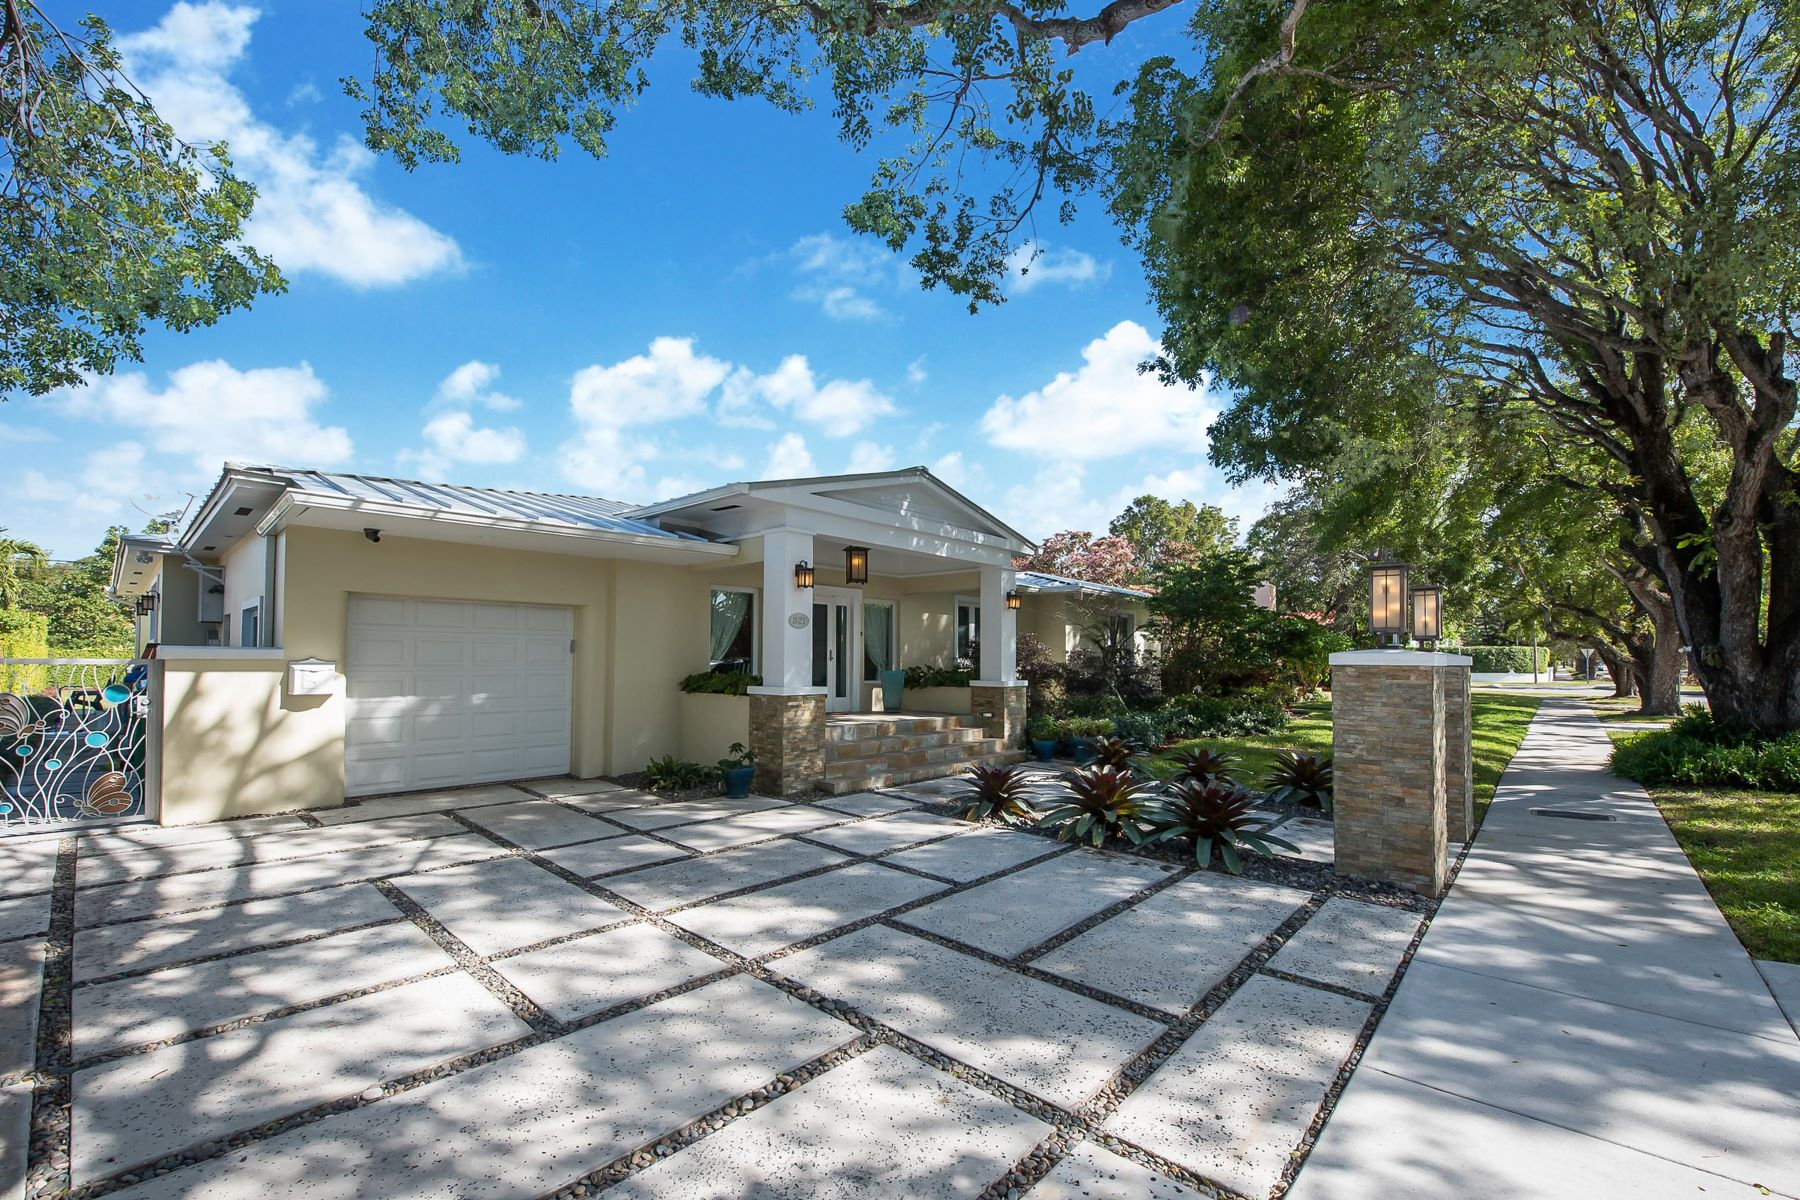 Single Family Home for Sale at 521 Sw 28th Rd 521 Sw 28th Rd Miami, Florida 33129 United States